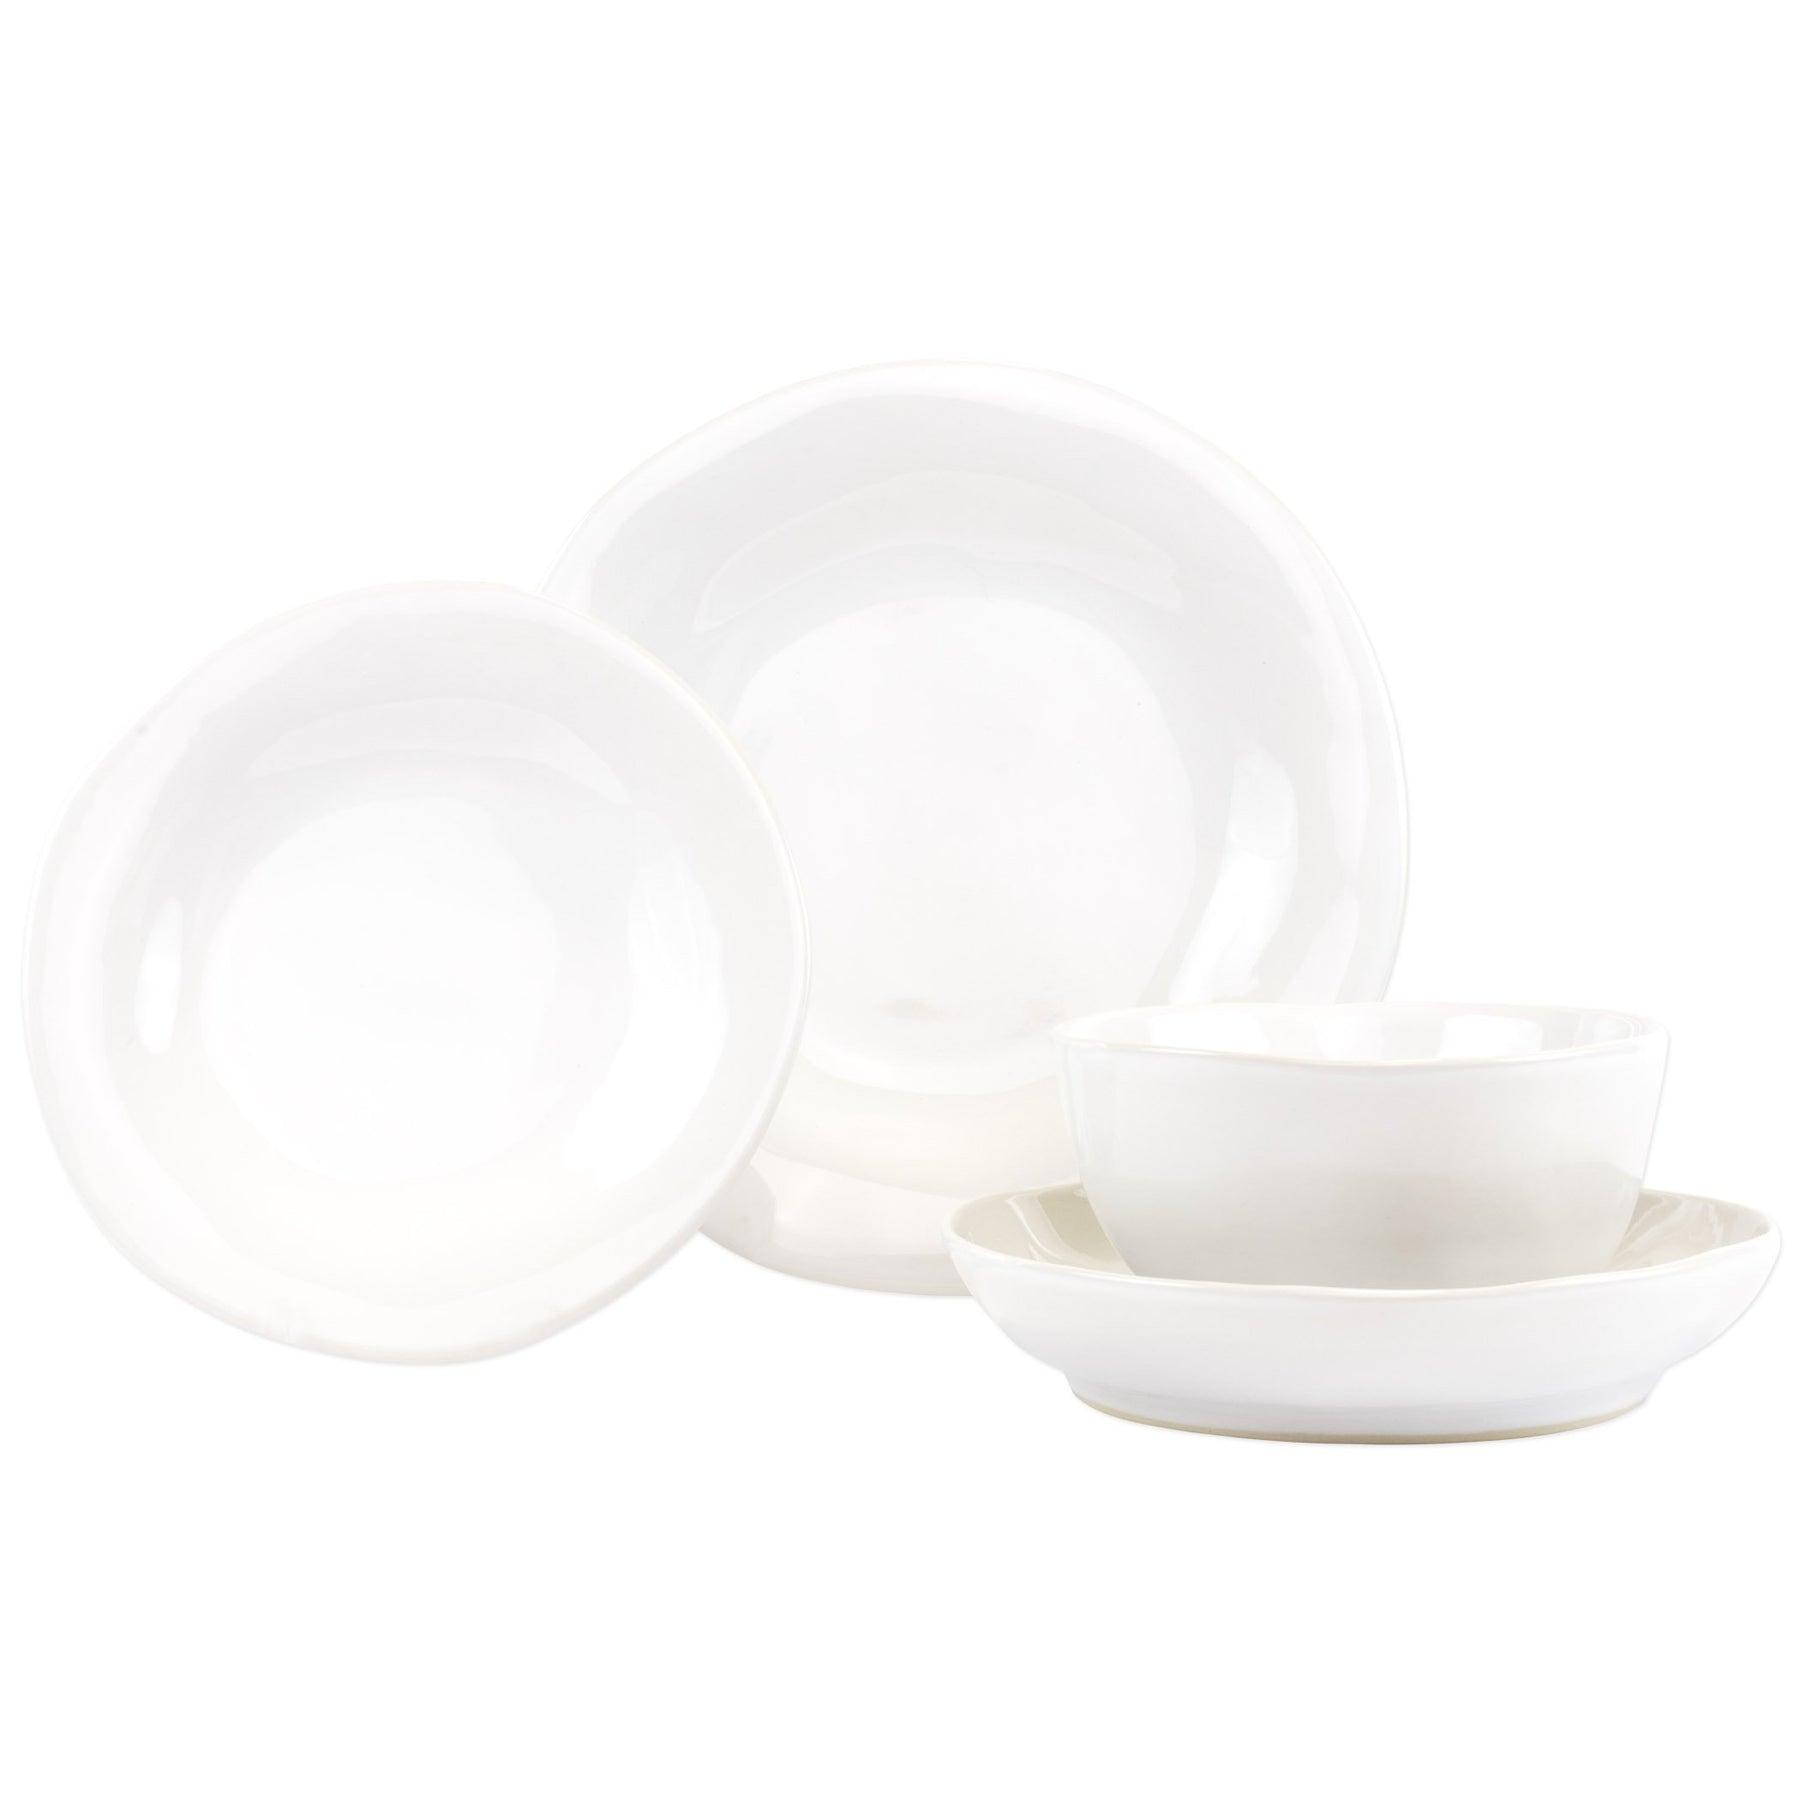 Aurora Snow Four Piece Place Setting Vietri